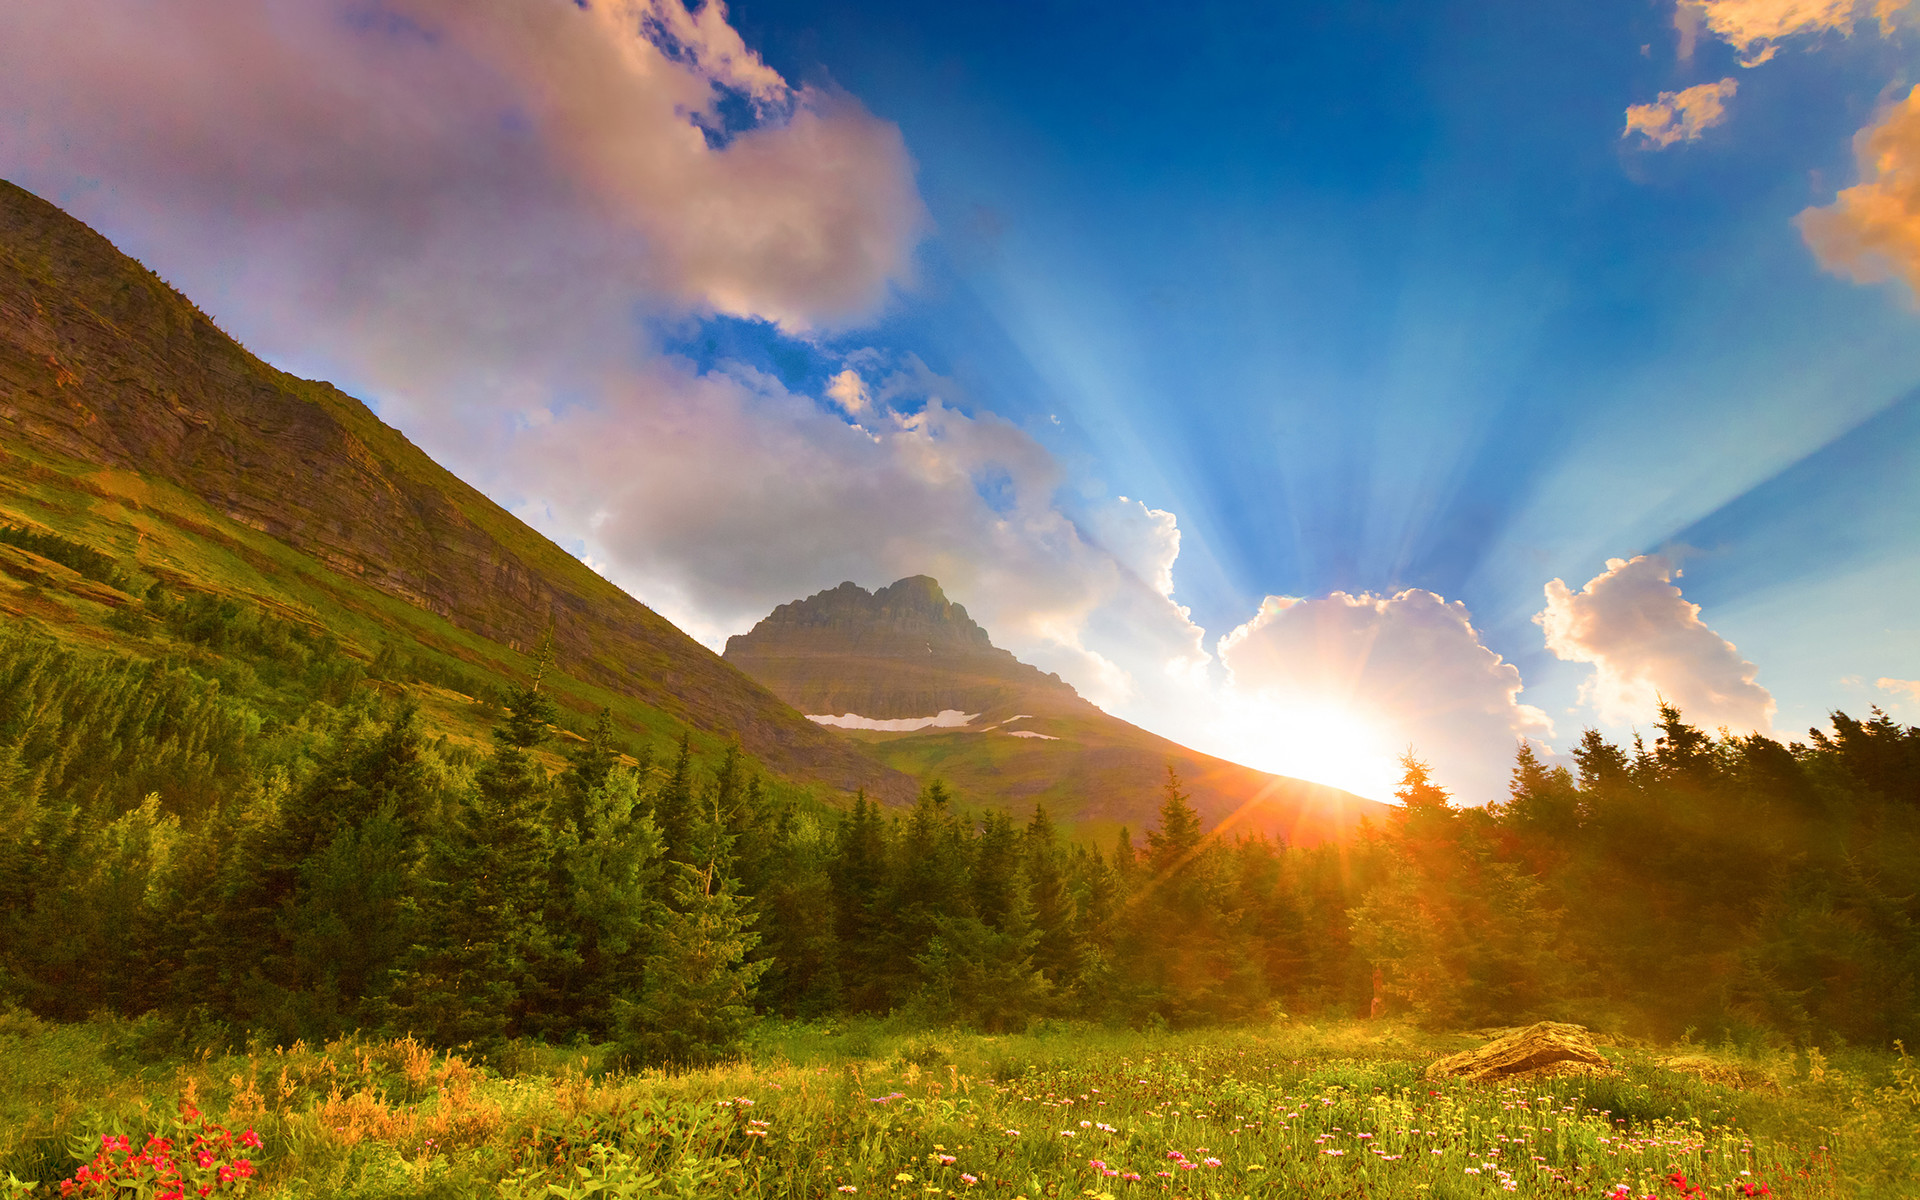 Sunrise Sunset Scenery | Sunrise mountain scenery Wallpapers Pictures  Photos Images